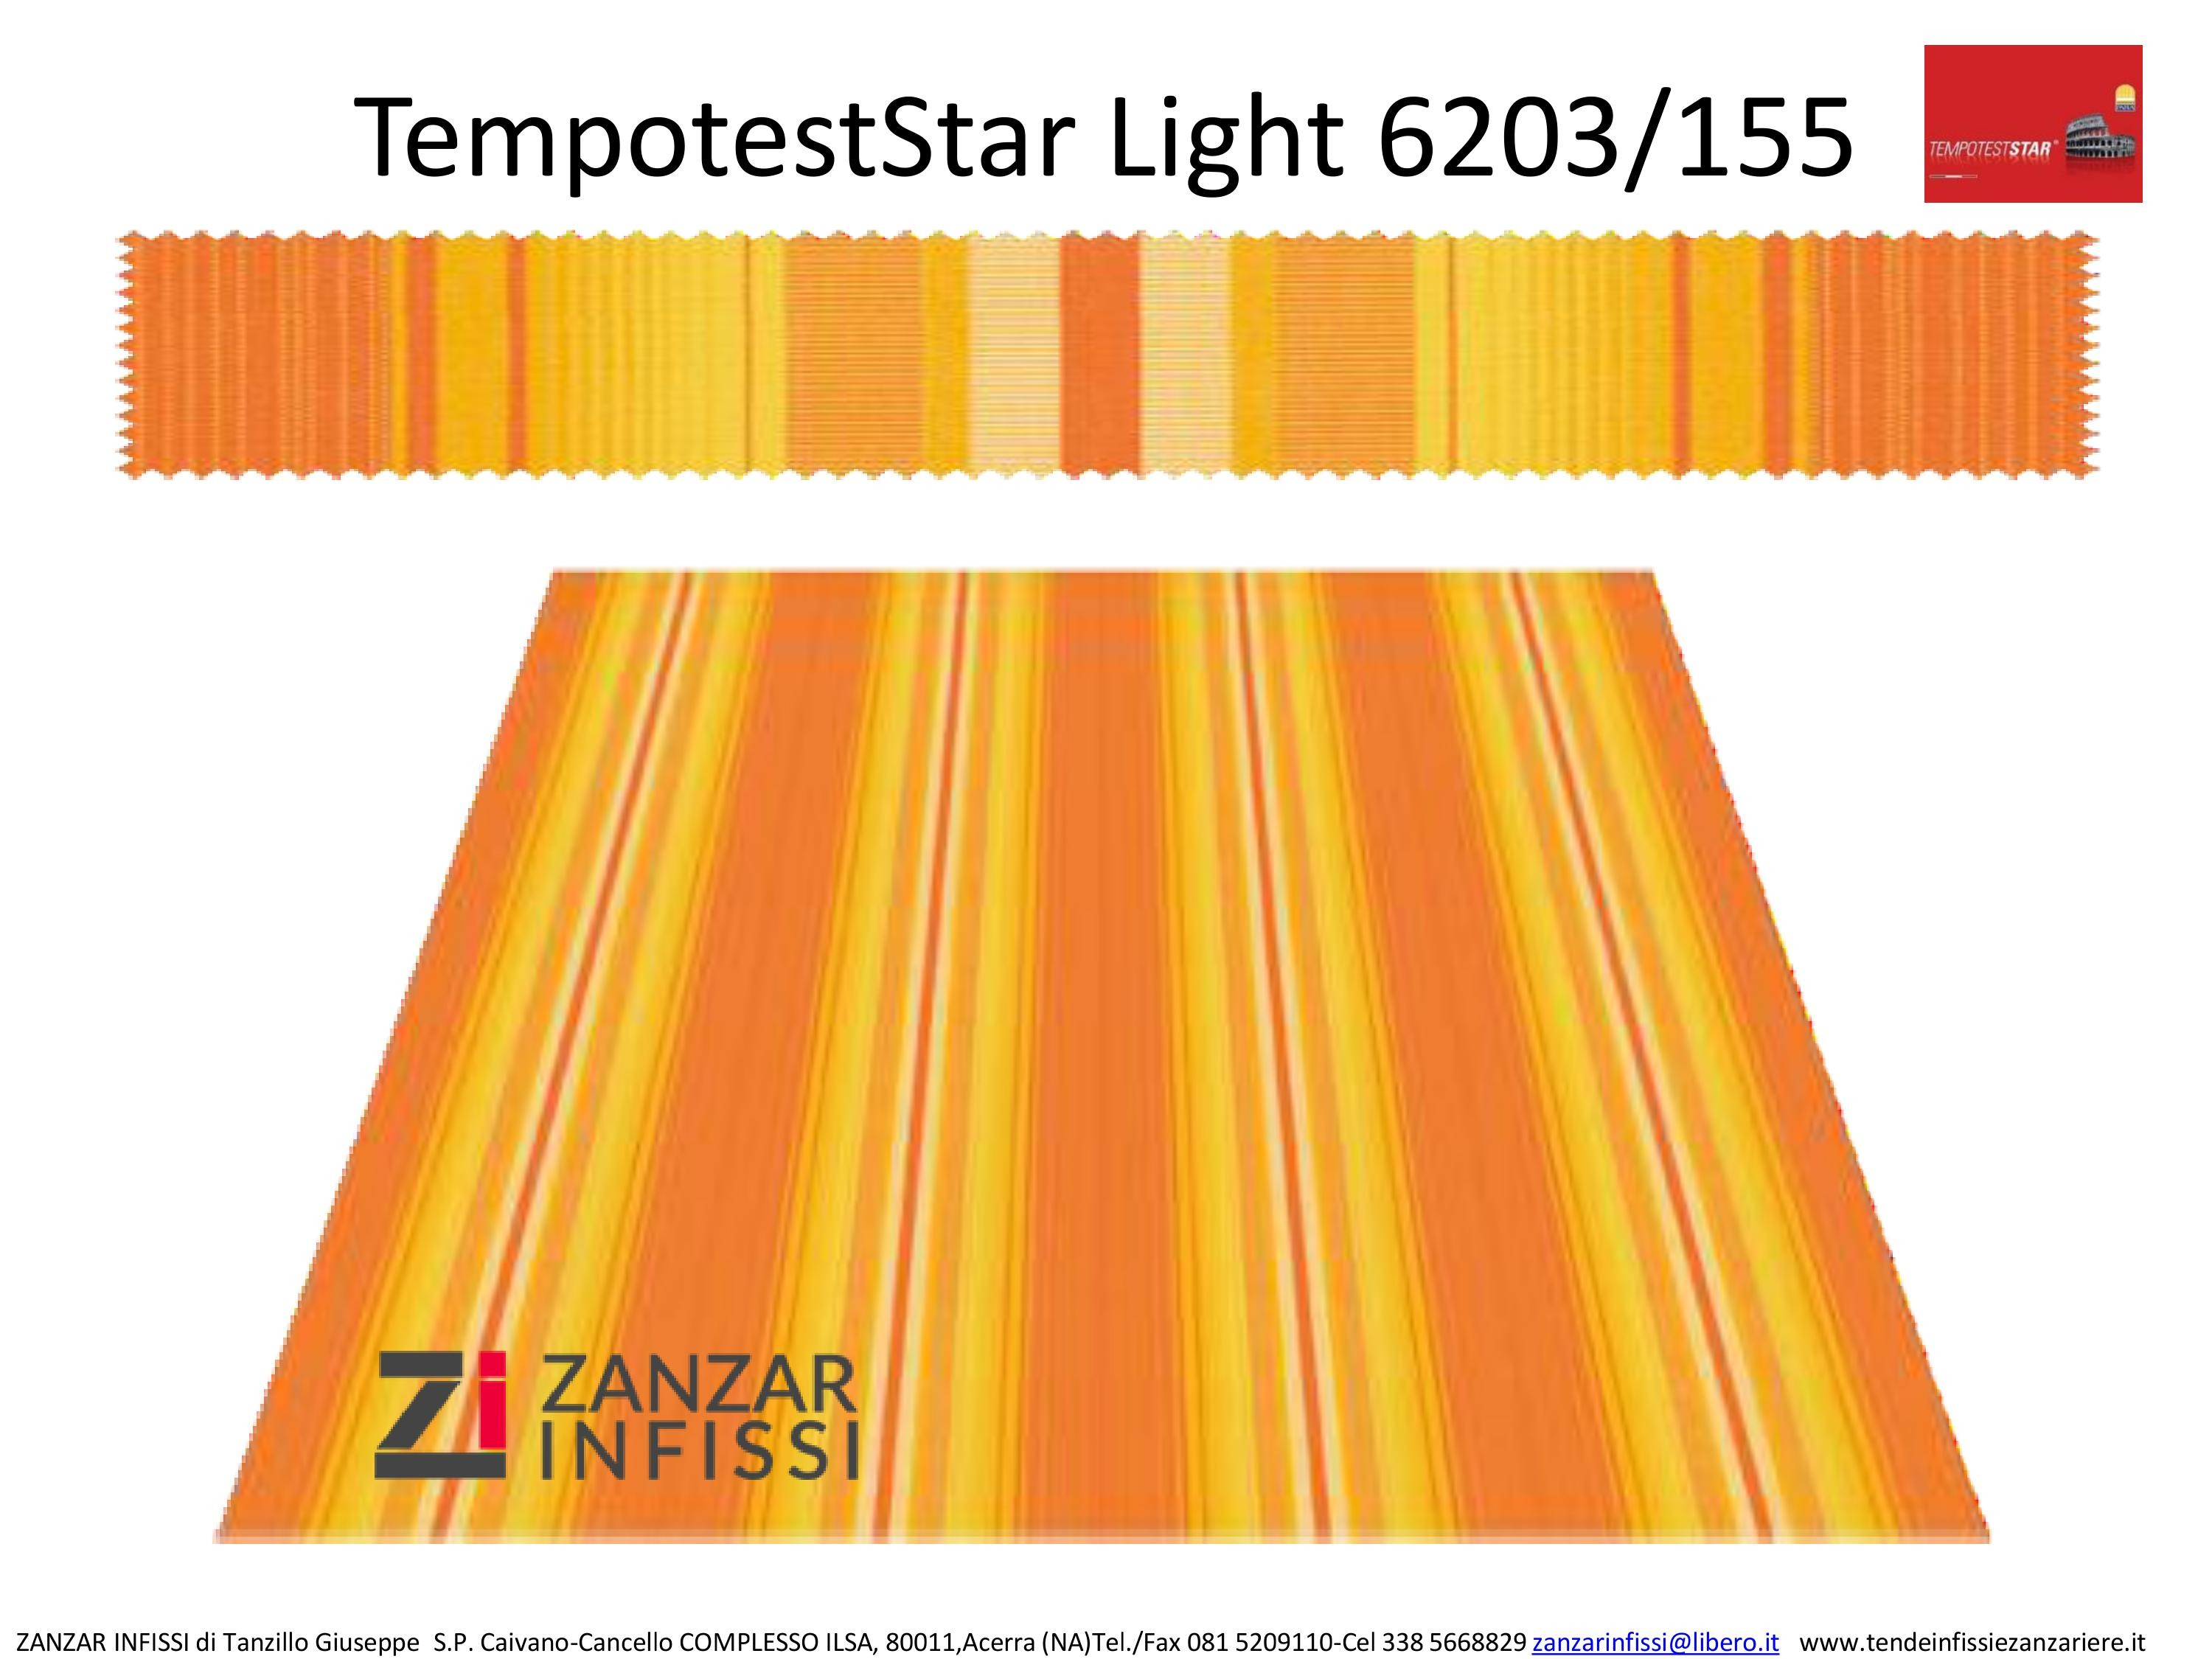 Tempotest star light 6203/155